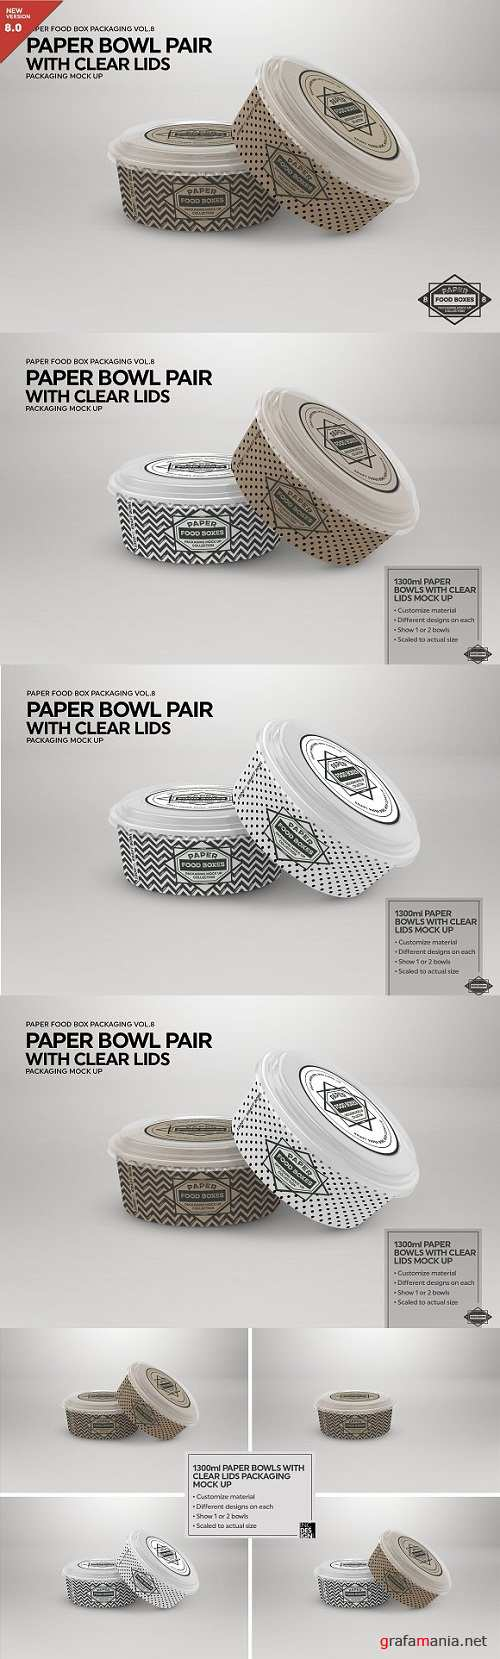 Paper Bowls with Clear Lids MockUp - 2181800